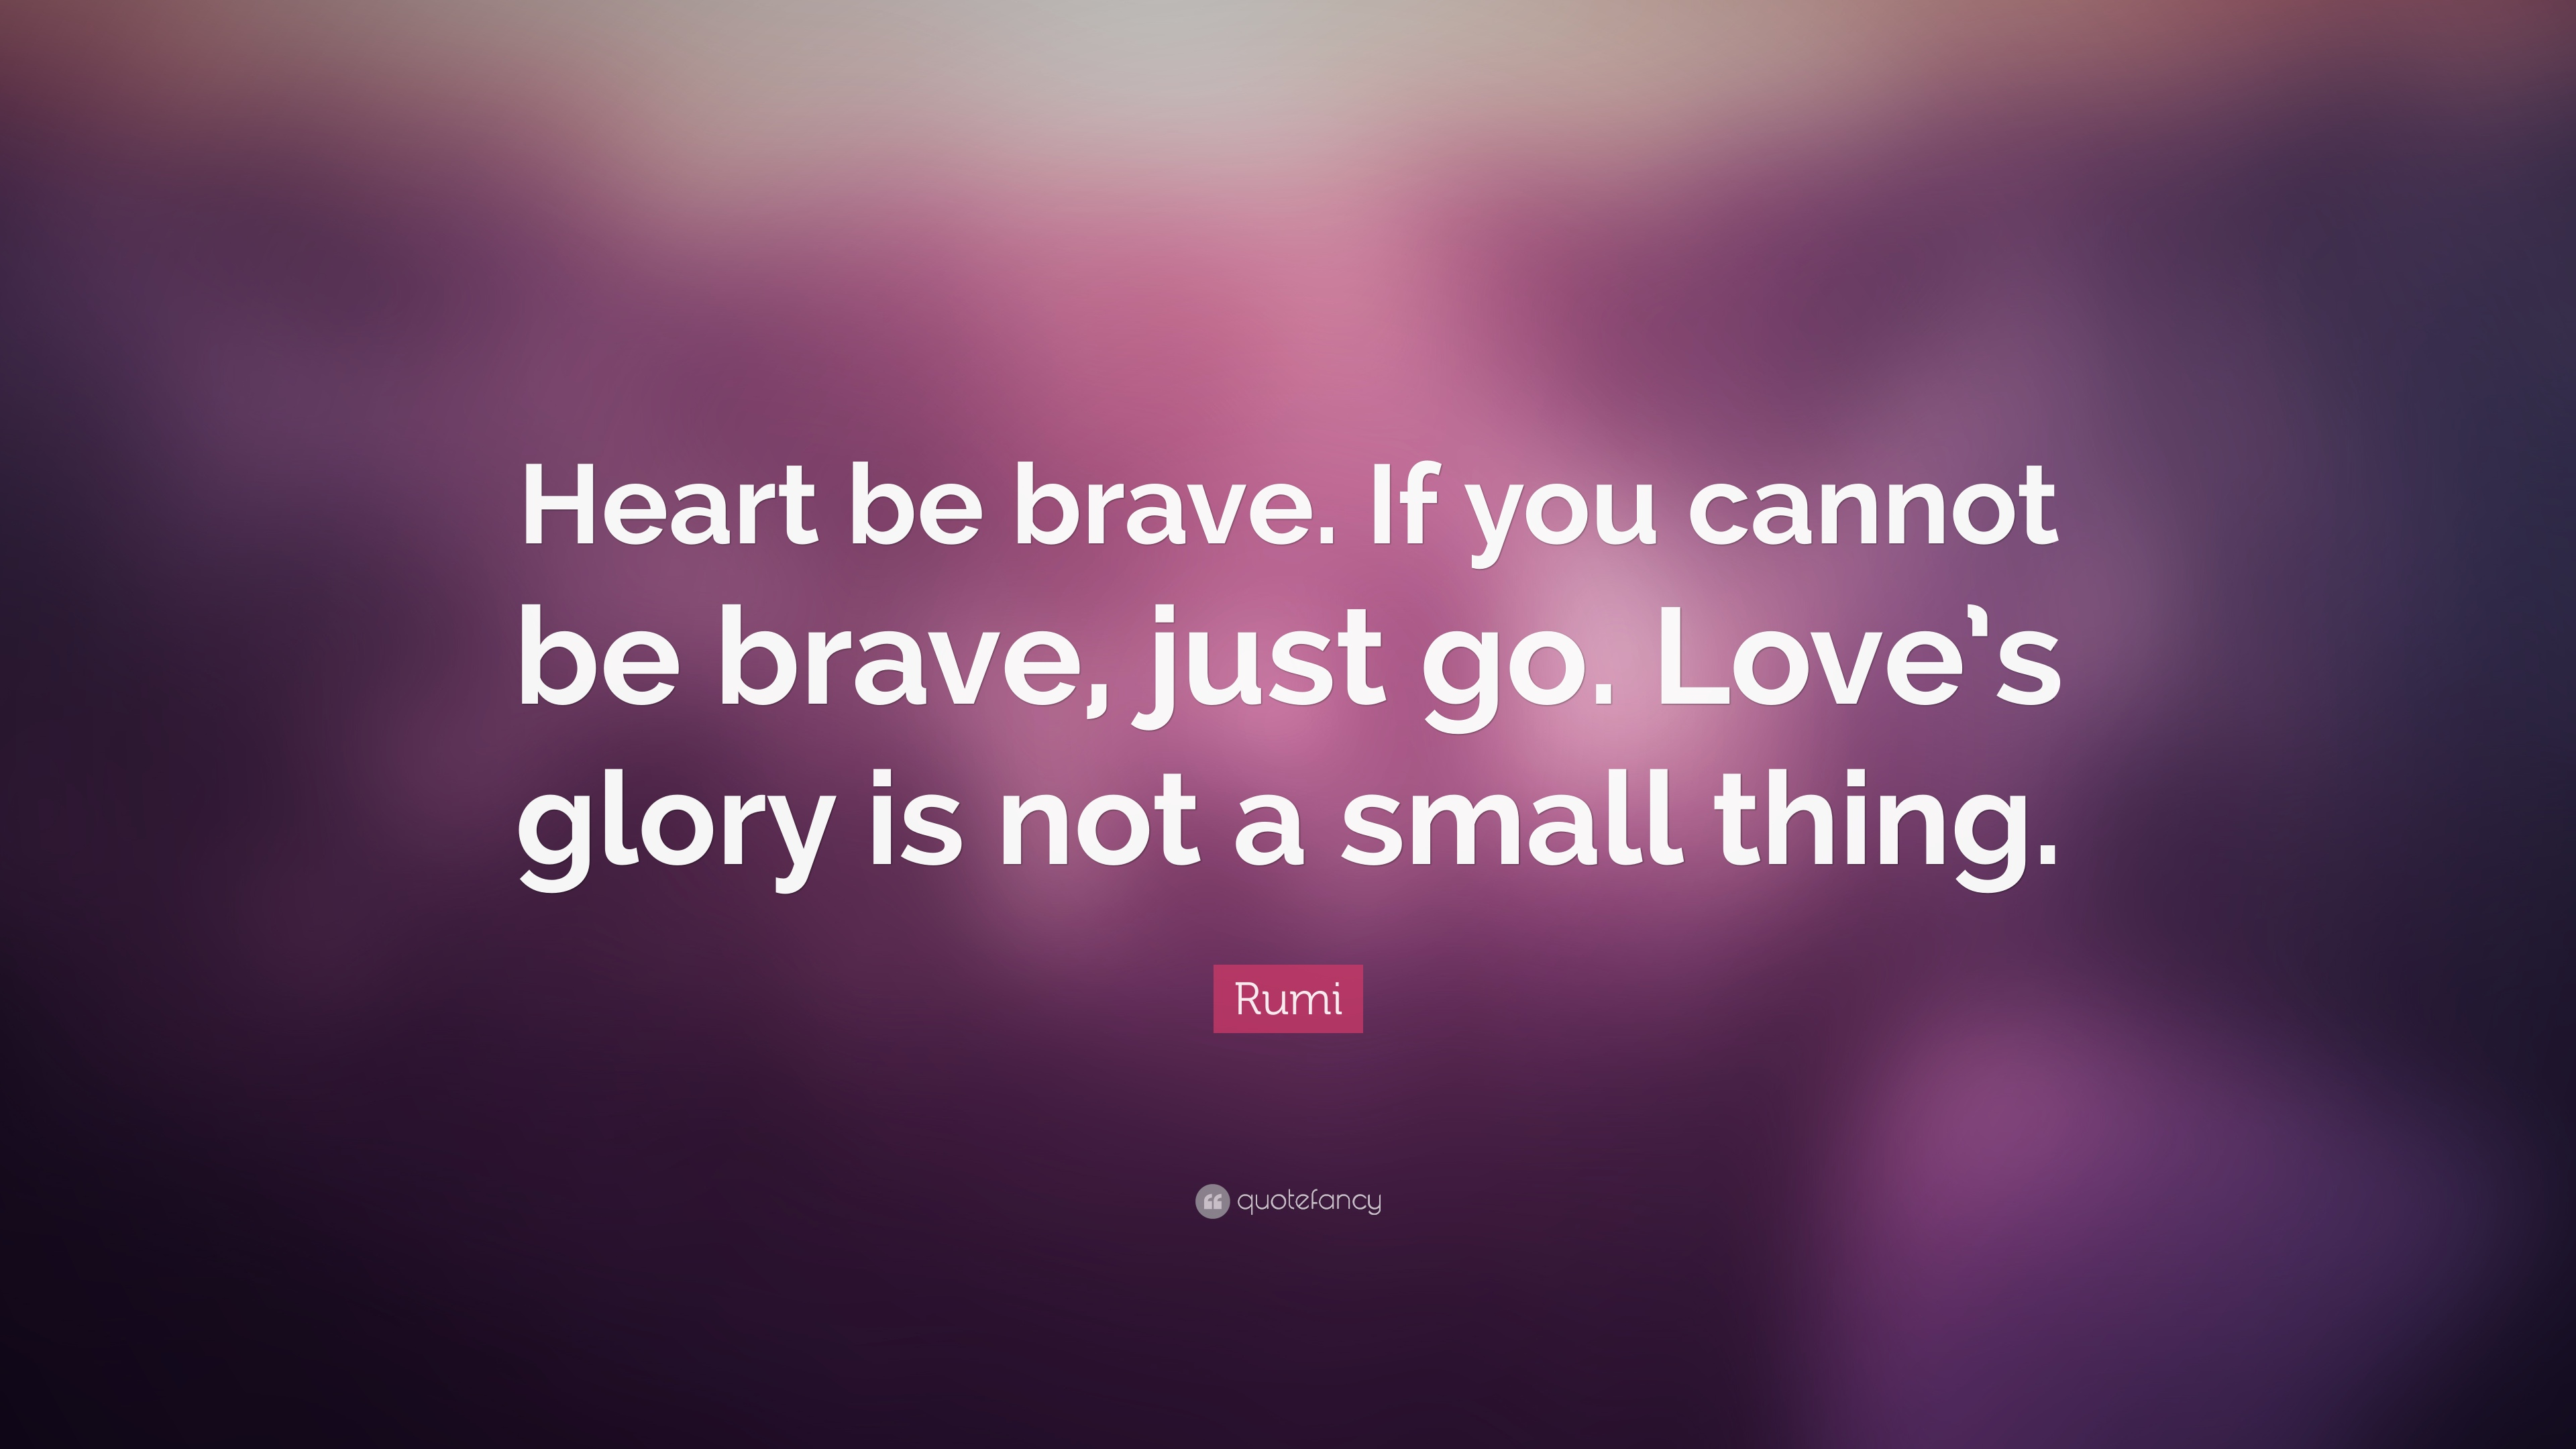 Rumi Quote Heart Be Brave If You Cannot Be Brave Just Go Loves